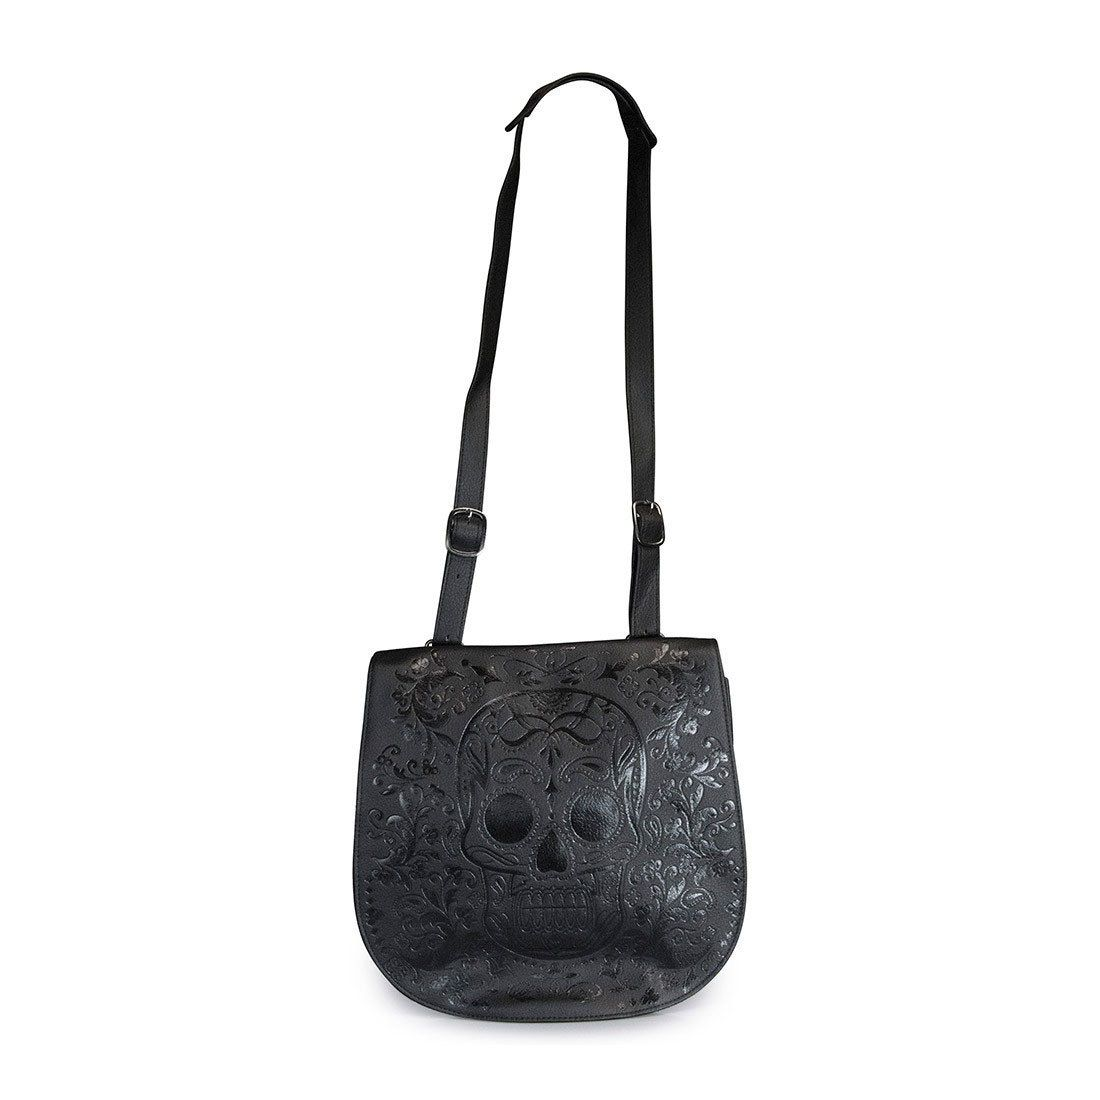 Loungefly Black Sugar Skull Crossbody Bag Purse And